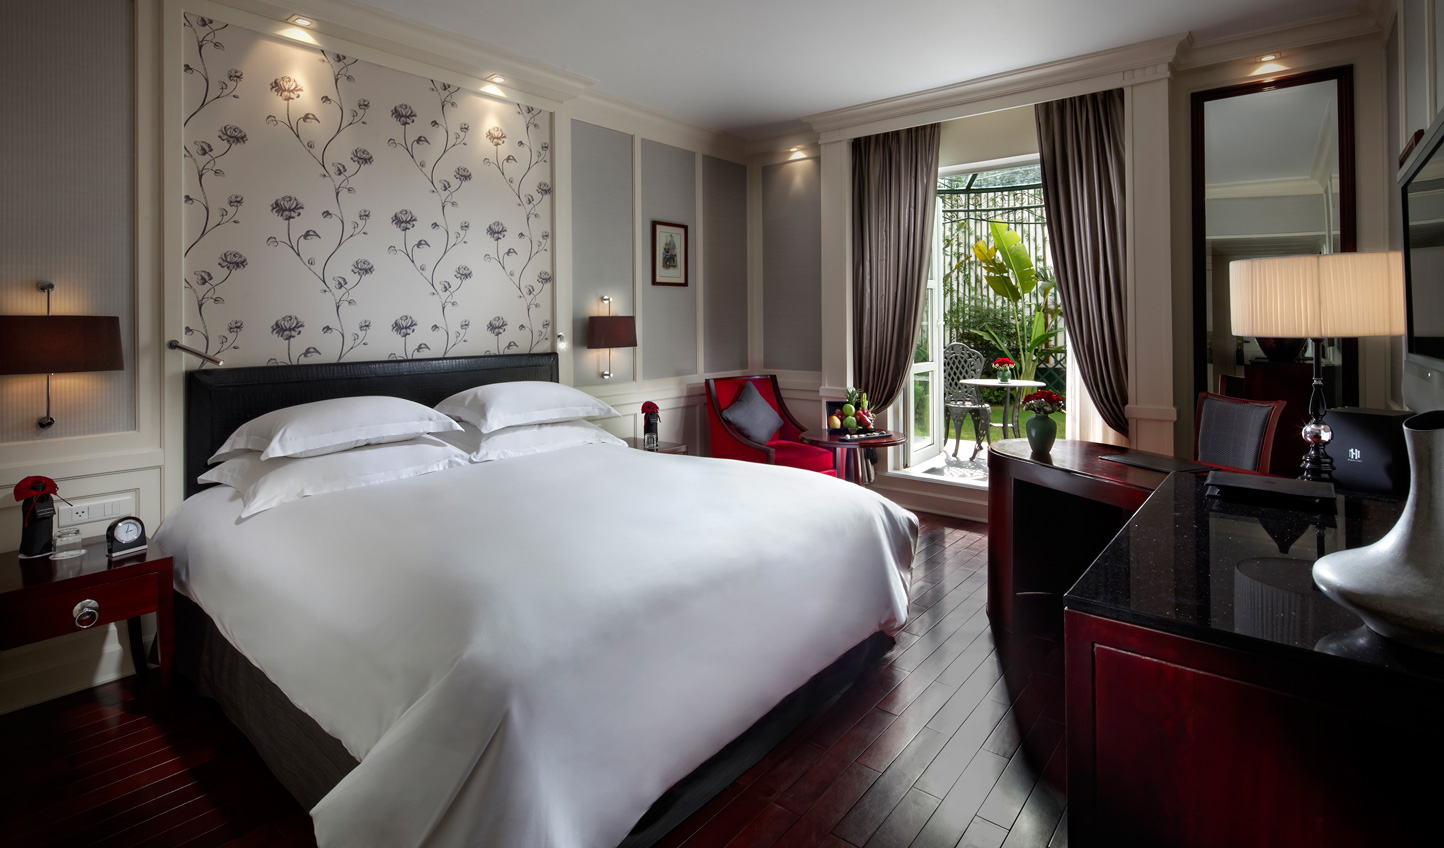 Step straight from your room into the Metropole's tranquil gardens